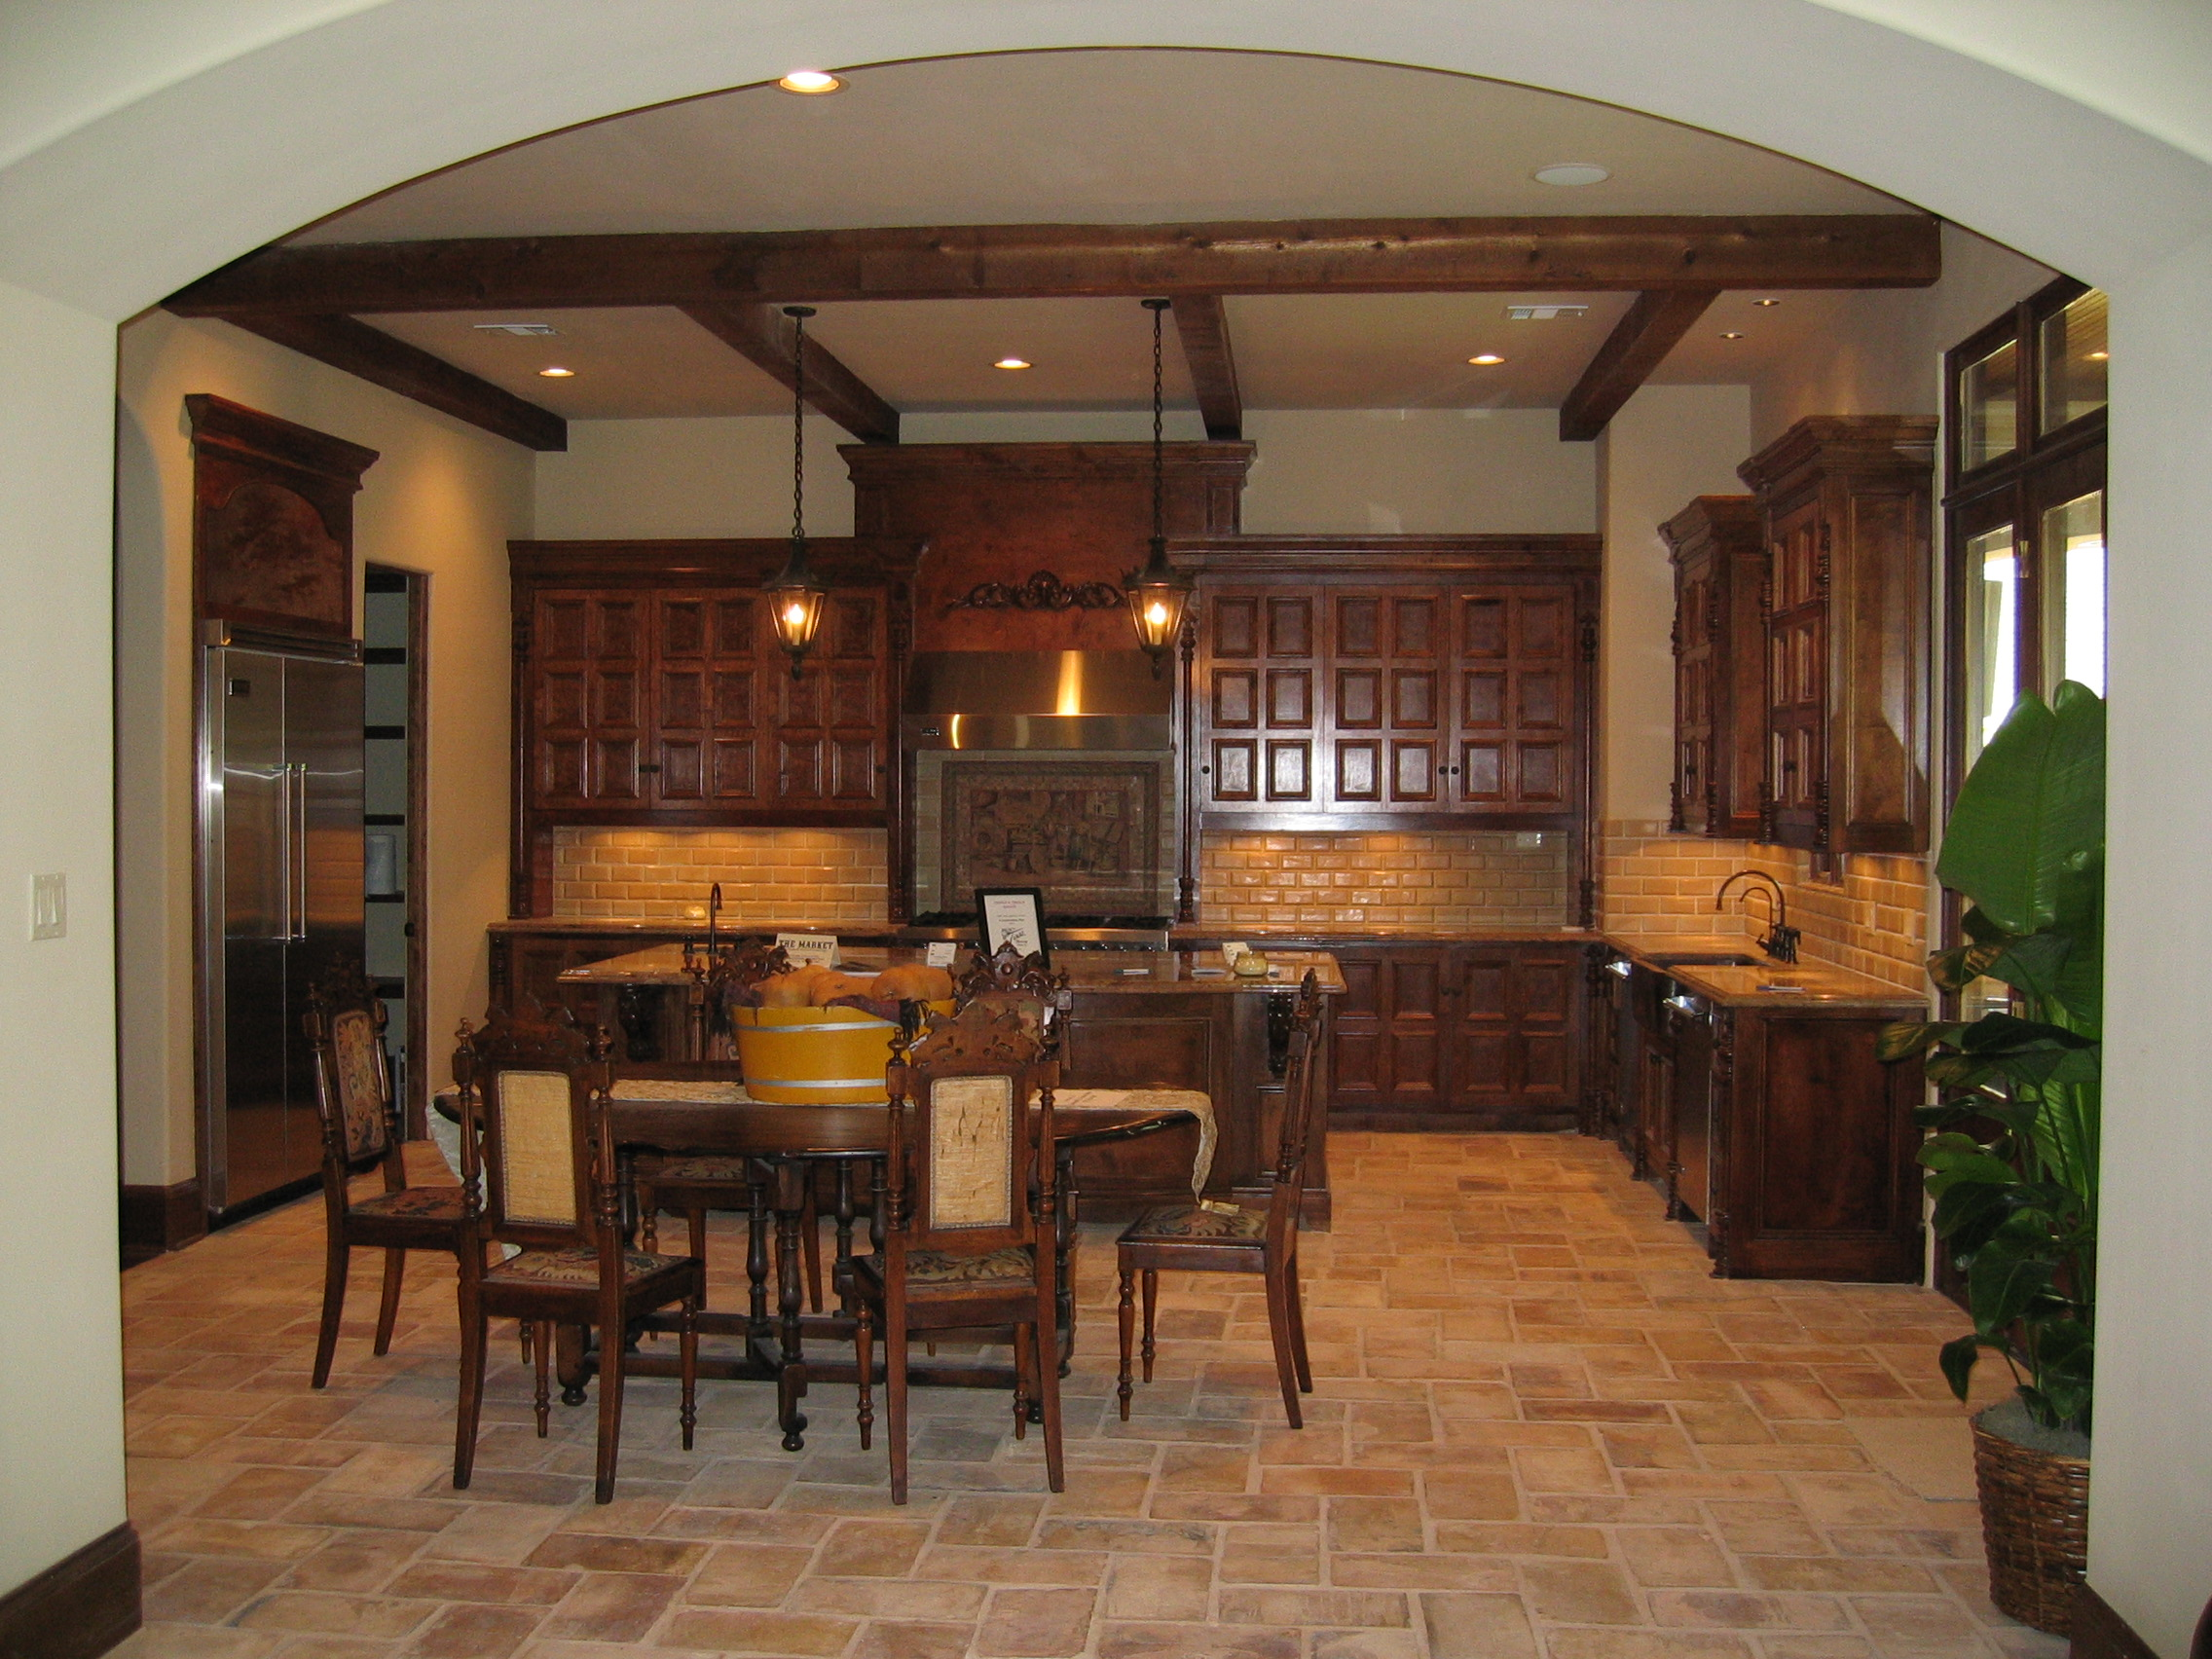 Custom Built Luxury Home Kitchen By Award Winning Watermark Builders  Founded By Gary Lee In Bellaire Texas